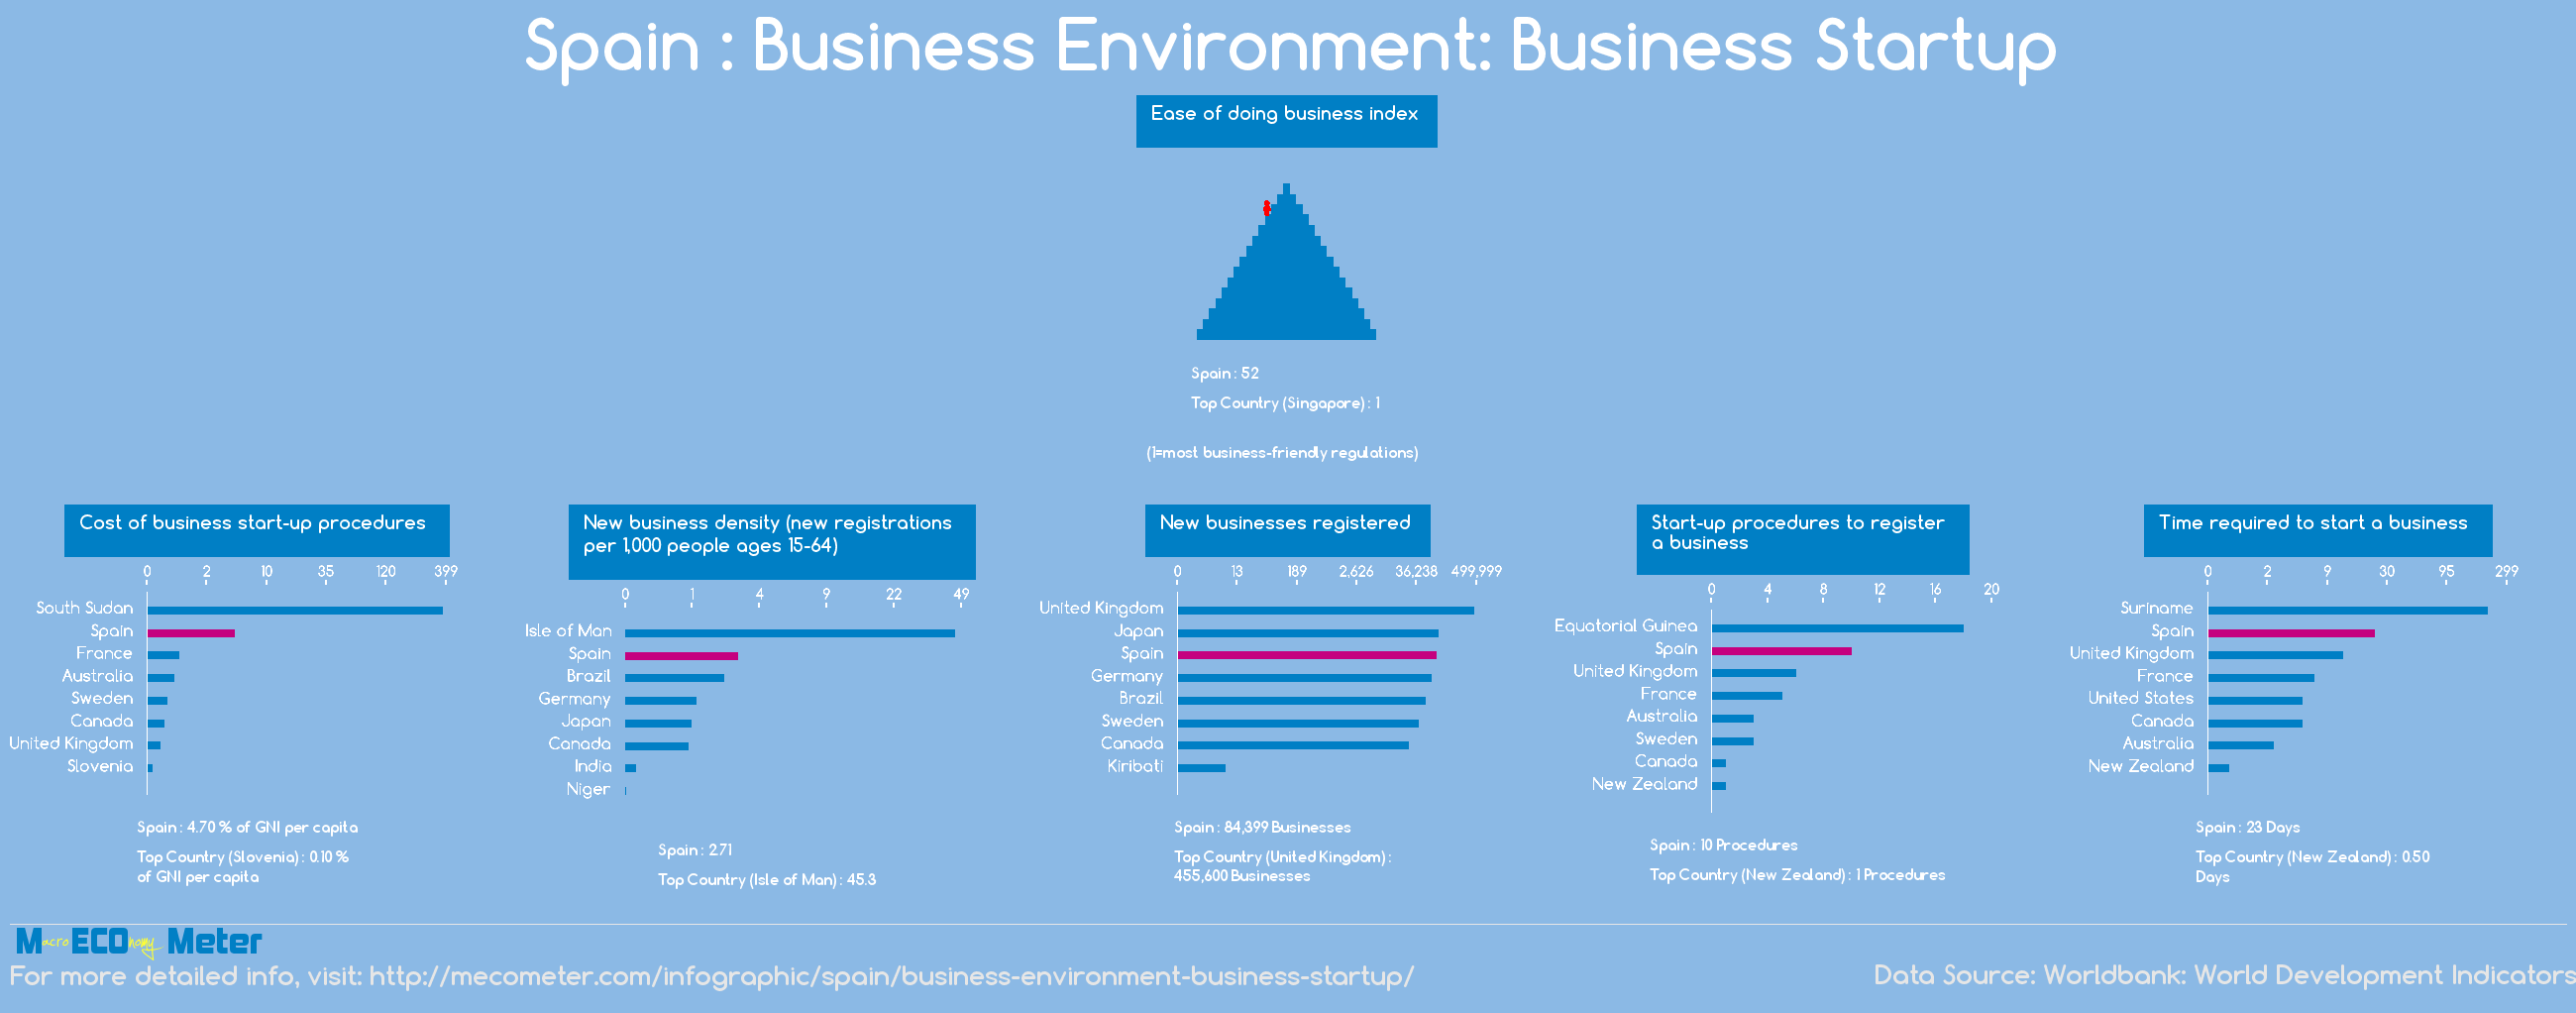 Spain : Business Environment: Business Startup